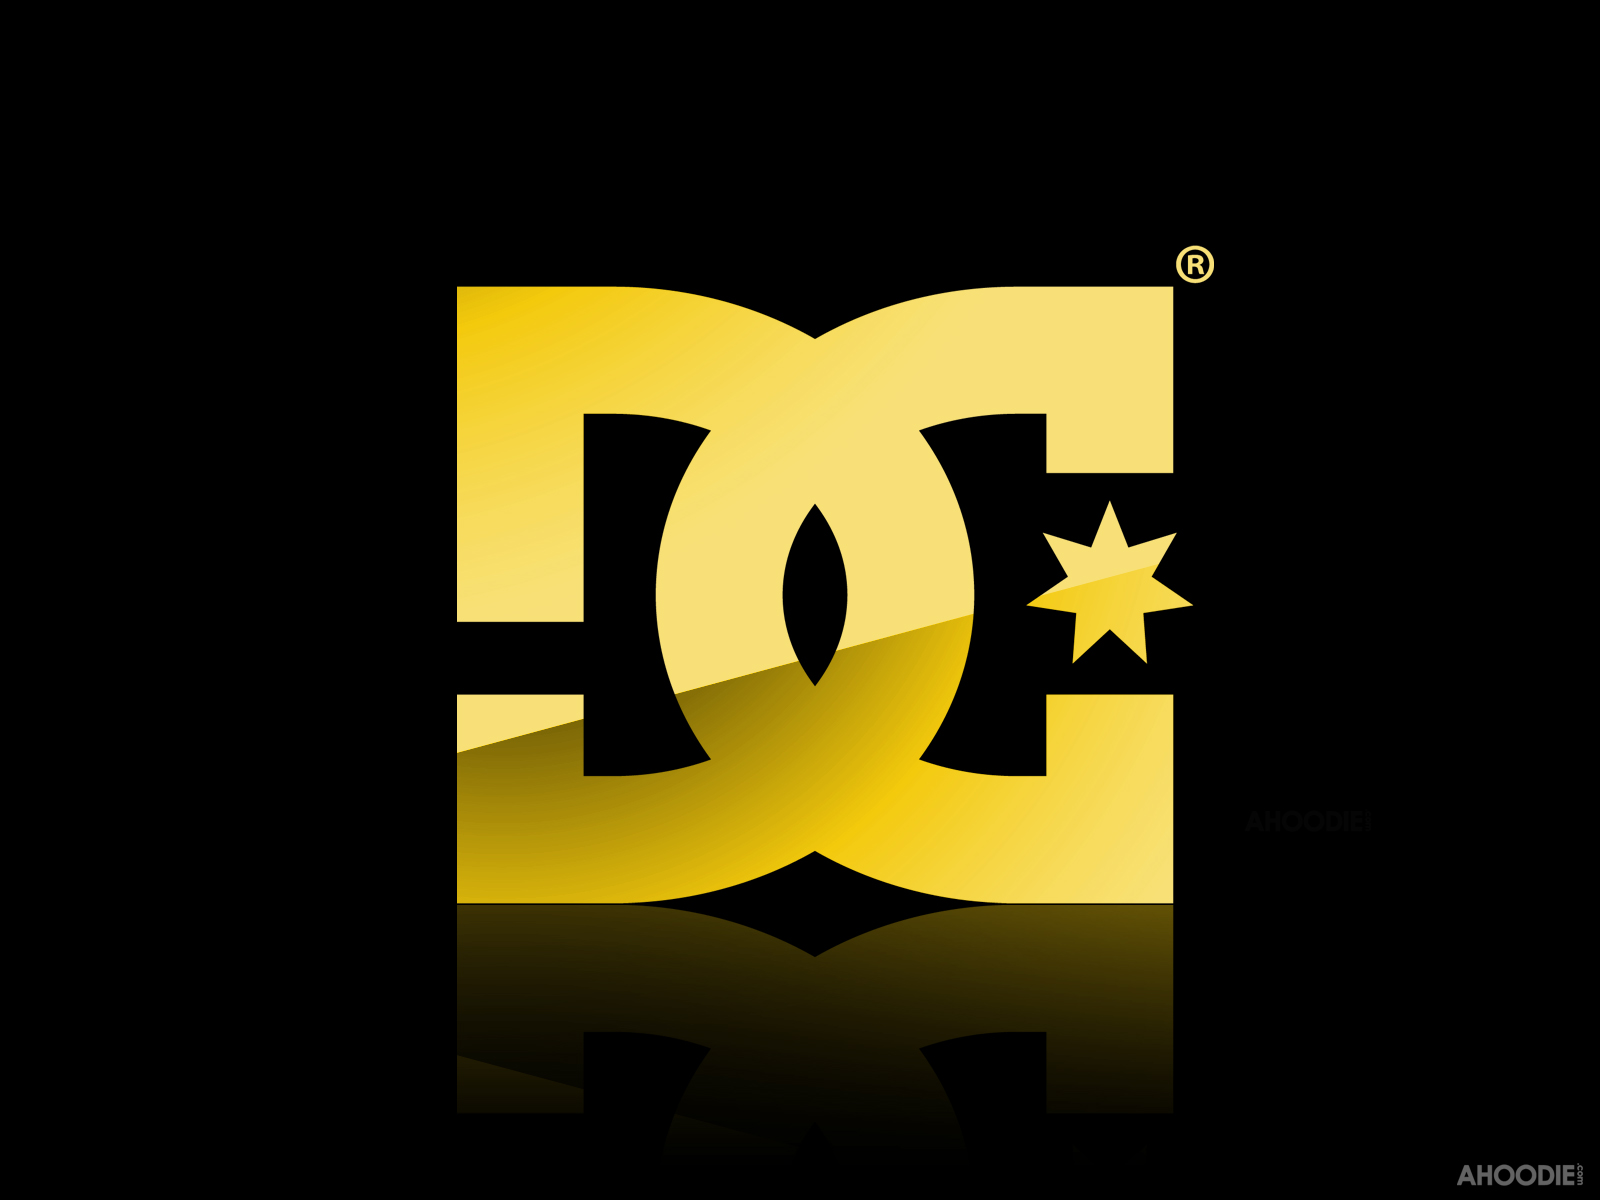 dc shoes logo wallpapers download free | pixelstalk